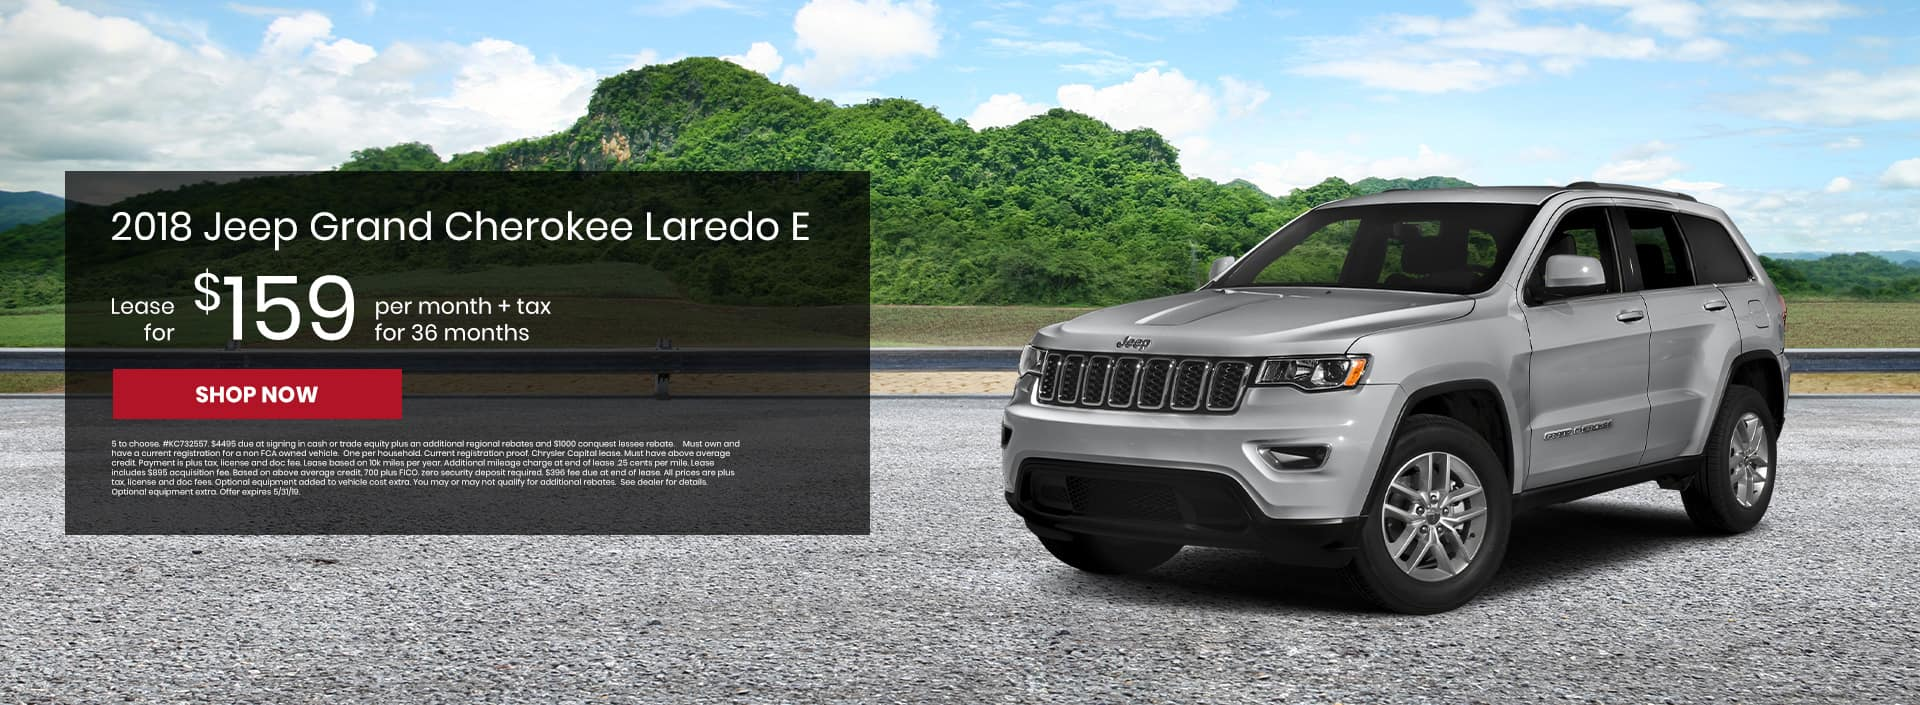 Check our out Jeep Grand Cherokee lease offers